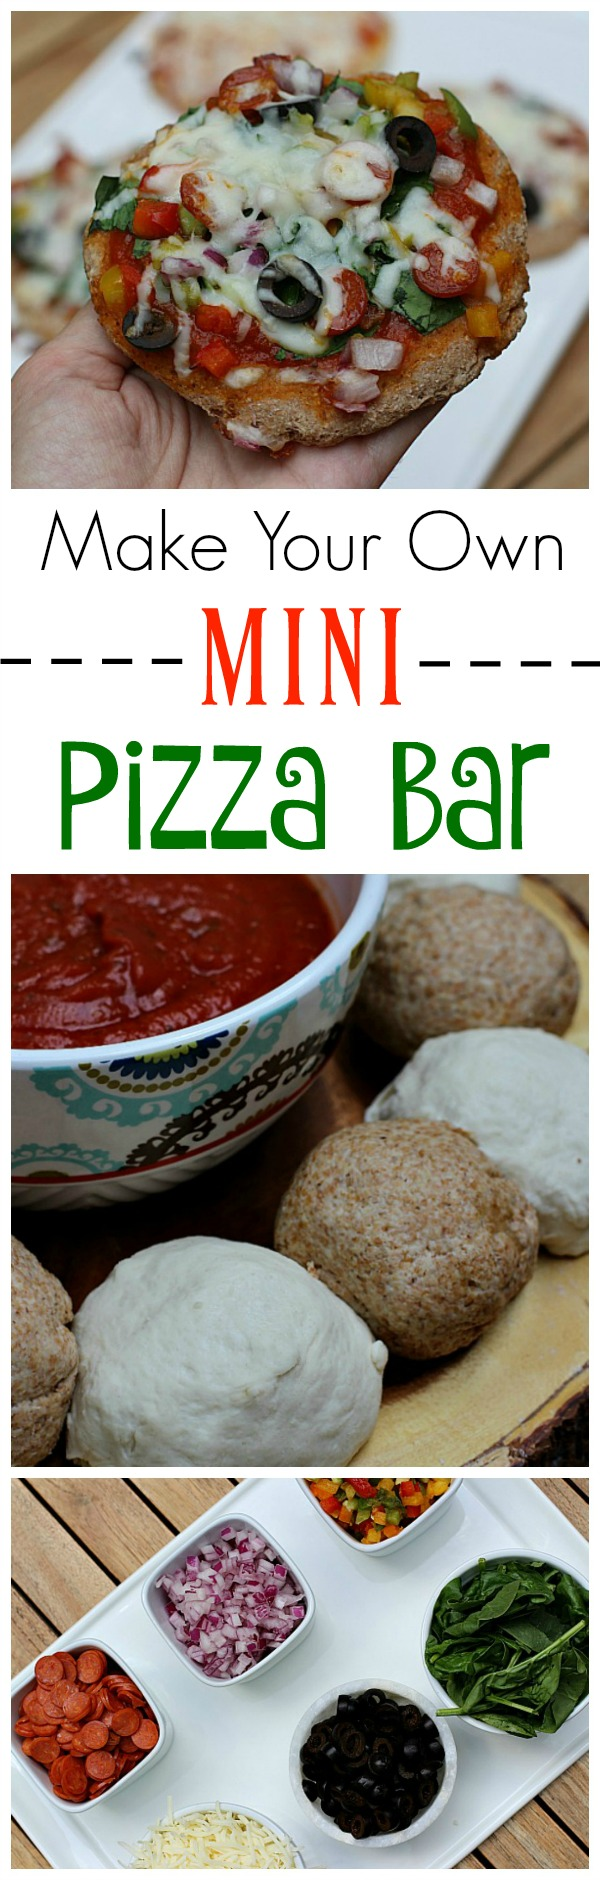 #ShareYourMiracles #ad DIY Mini Pizza Bar